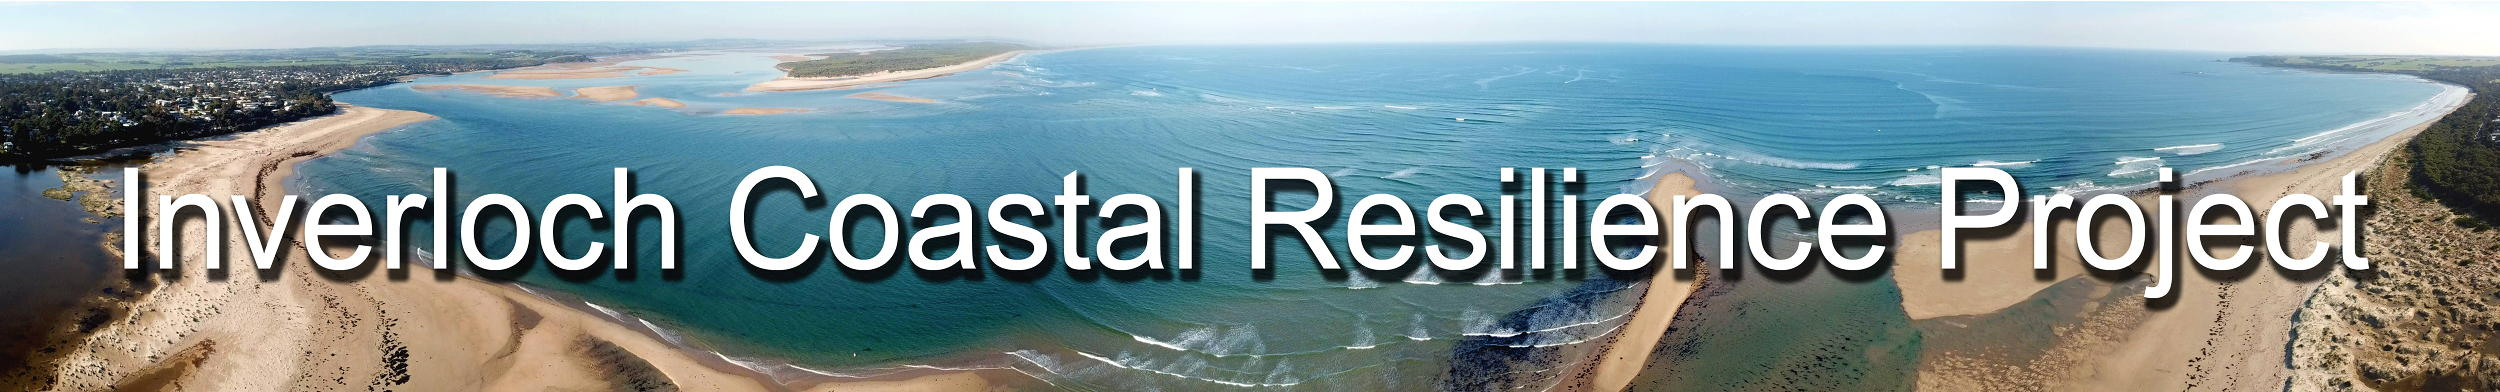 Inverloch Coastal Resilience Project